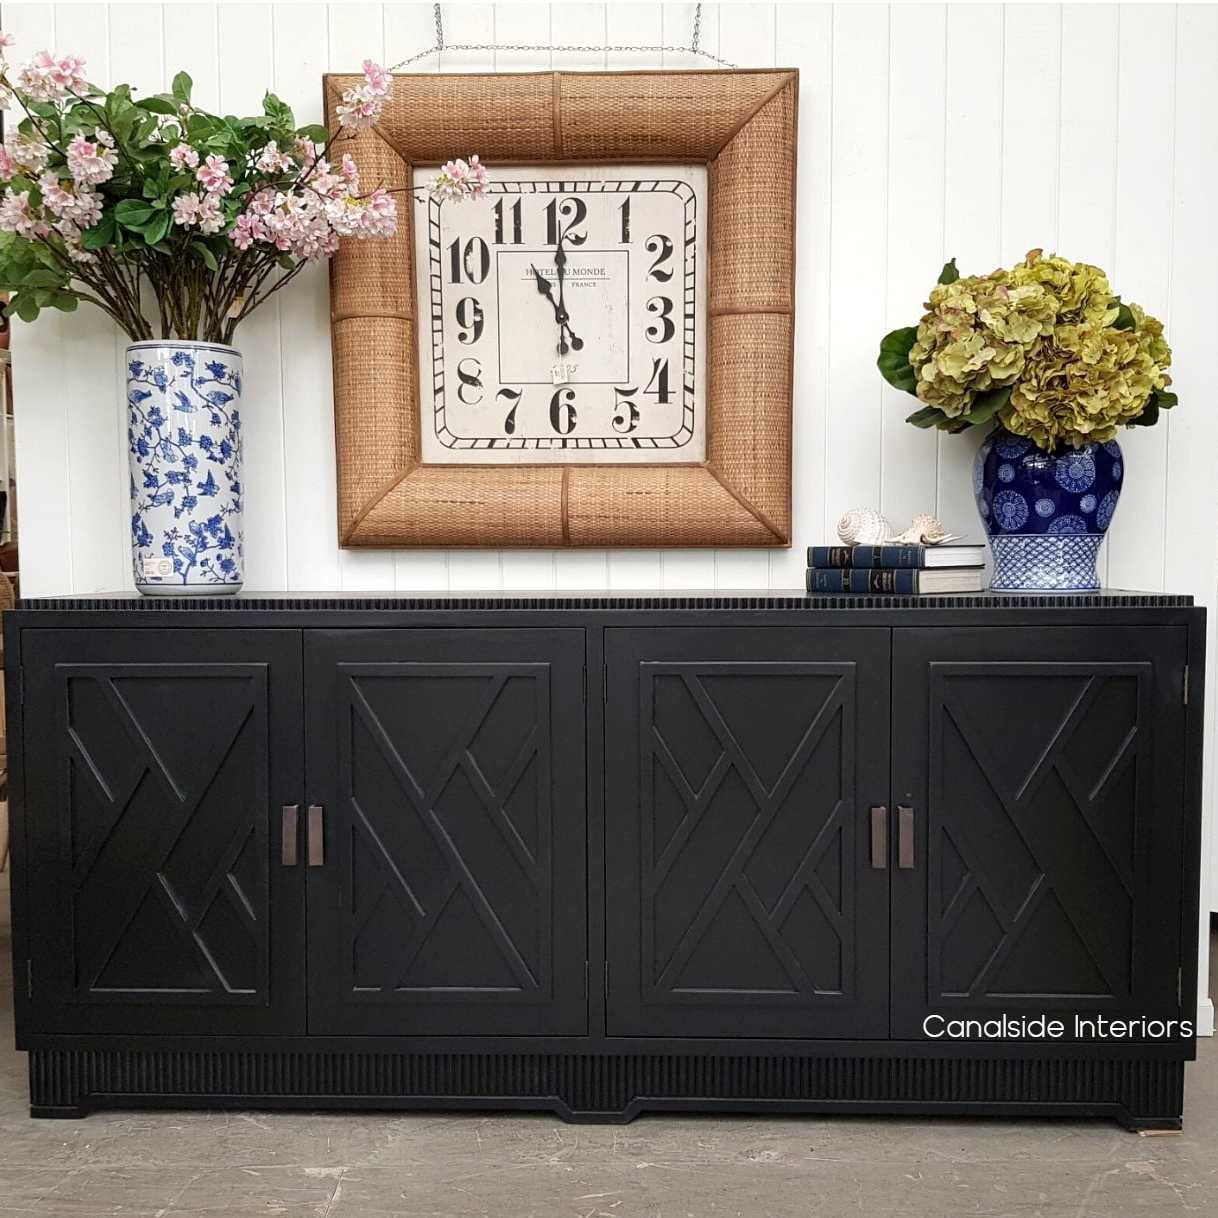 Ellery 4 Door Sideboard Distressed Black  HAMPTONS Style, PLANTATION Style, LIVING Room, LIVING TV Media & Storage, TABLES Sideboards & Buffets, STORAGE, STORAGE Sideboards & Buffets, PLANTATION STYLE